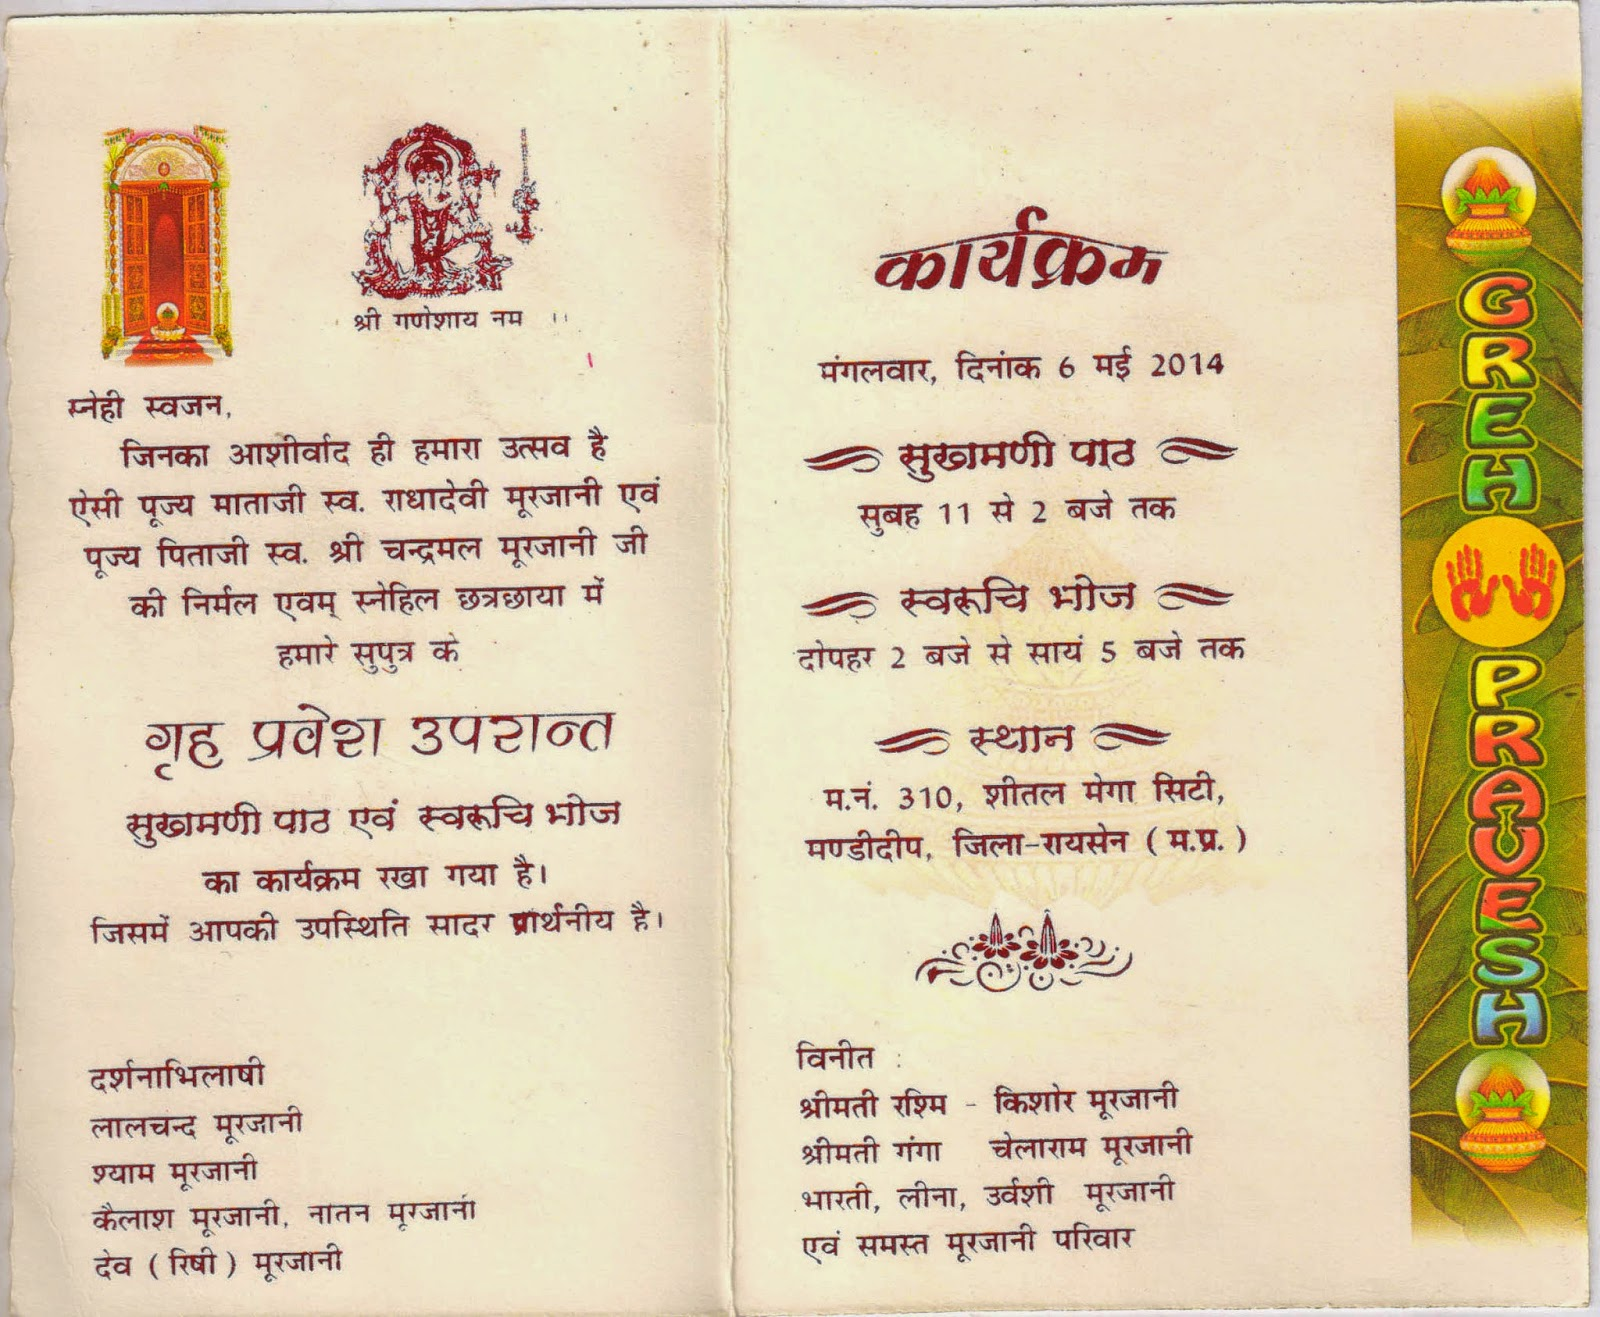 GRAH+PRAVESH+CARD cards griha pravesh invitation cards griha pravesh invitation card,Griha Pravesh Invitation In Hindi